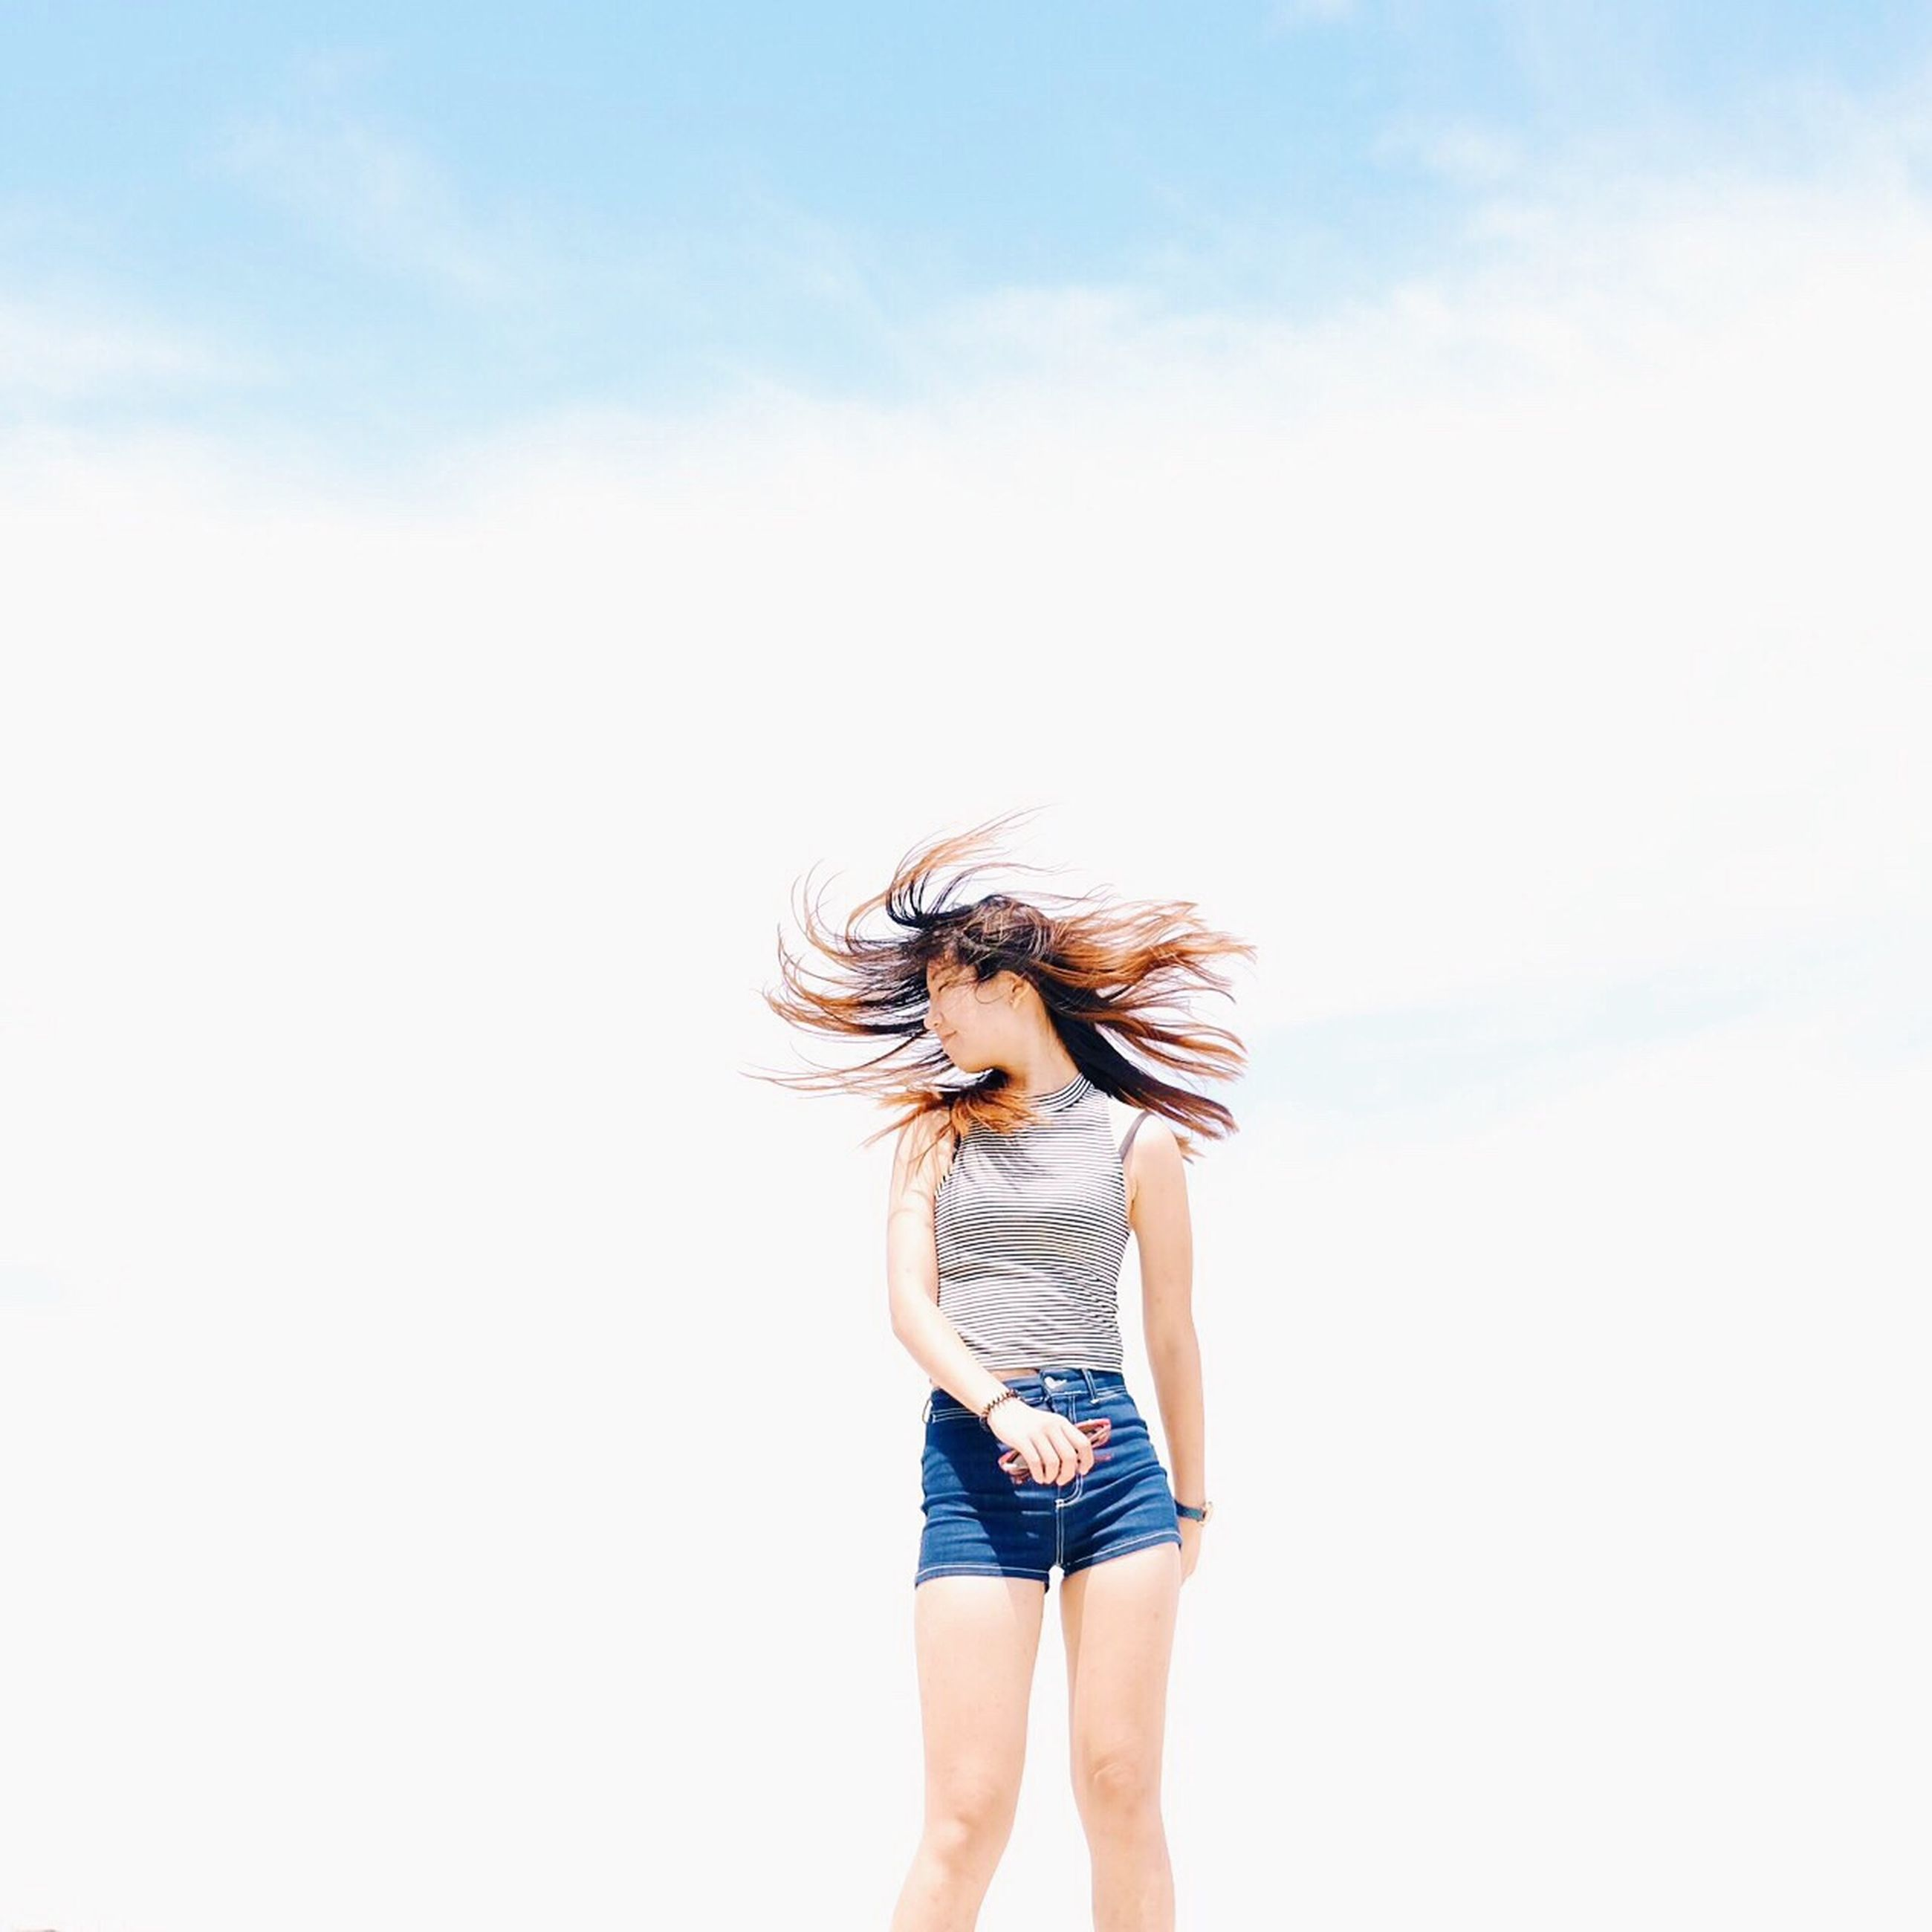 lifestyles, standing, leisure activity, young adult, copy space, young women, casual clothing, person, three quarter length, sky, front view, holding, low angle view, studio shot, arms raised, rear view, white background, long hair